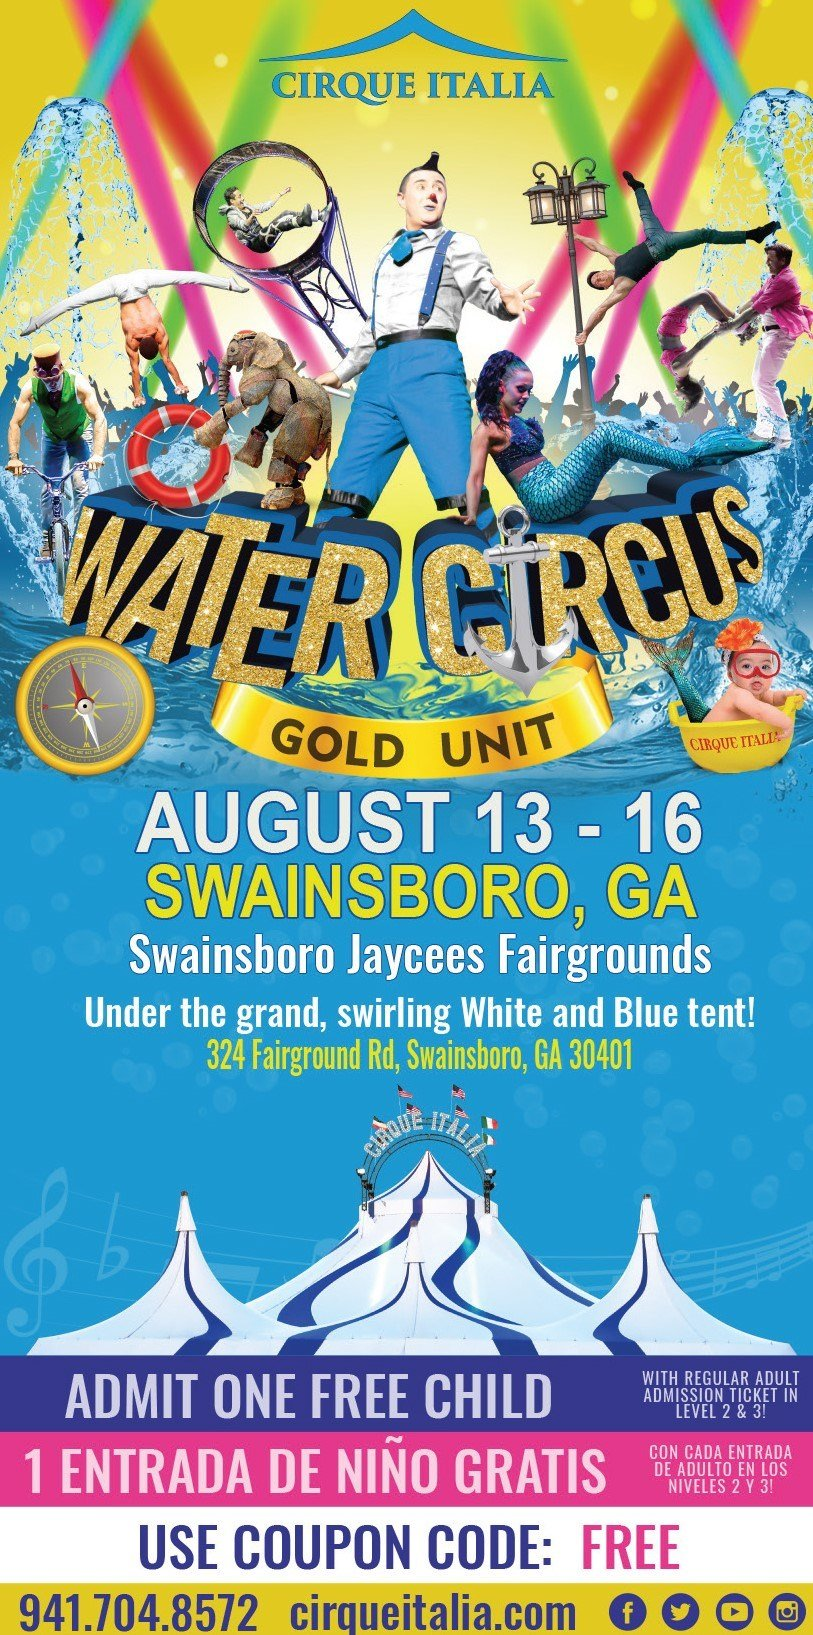 Cirque Italia Set To Make Waves In Swainsboro With Water Product Wfxg